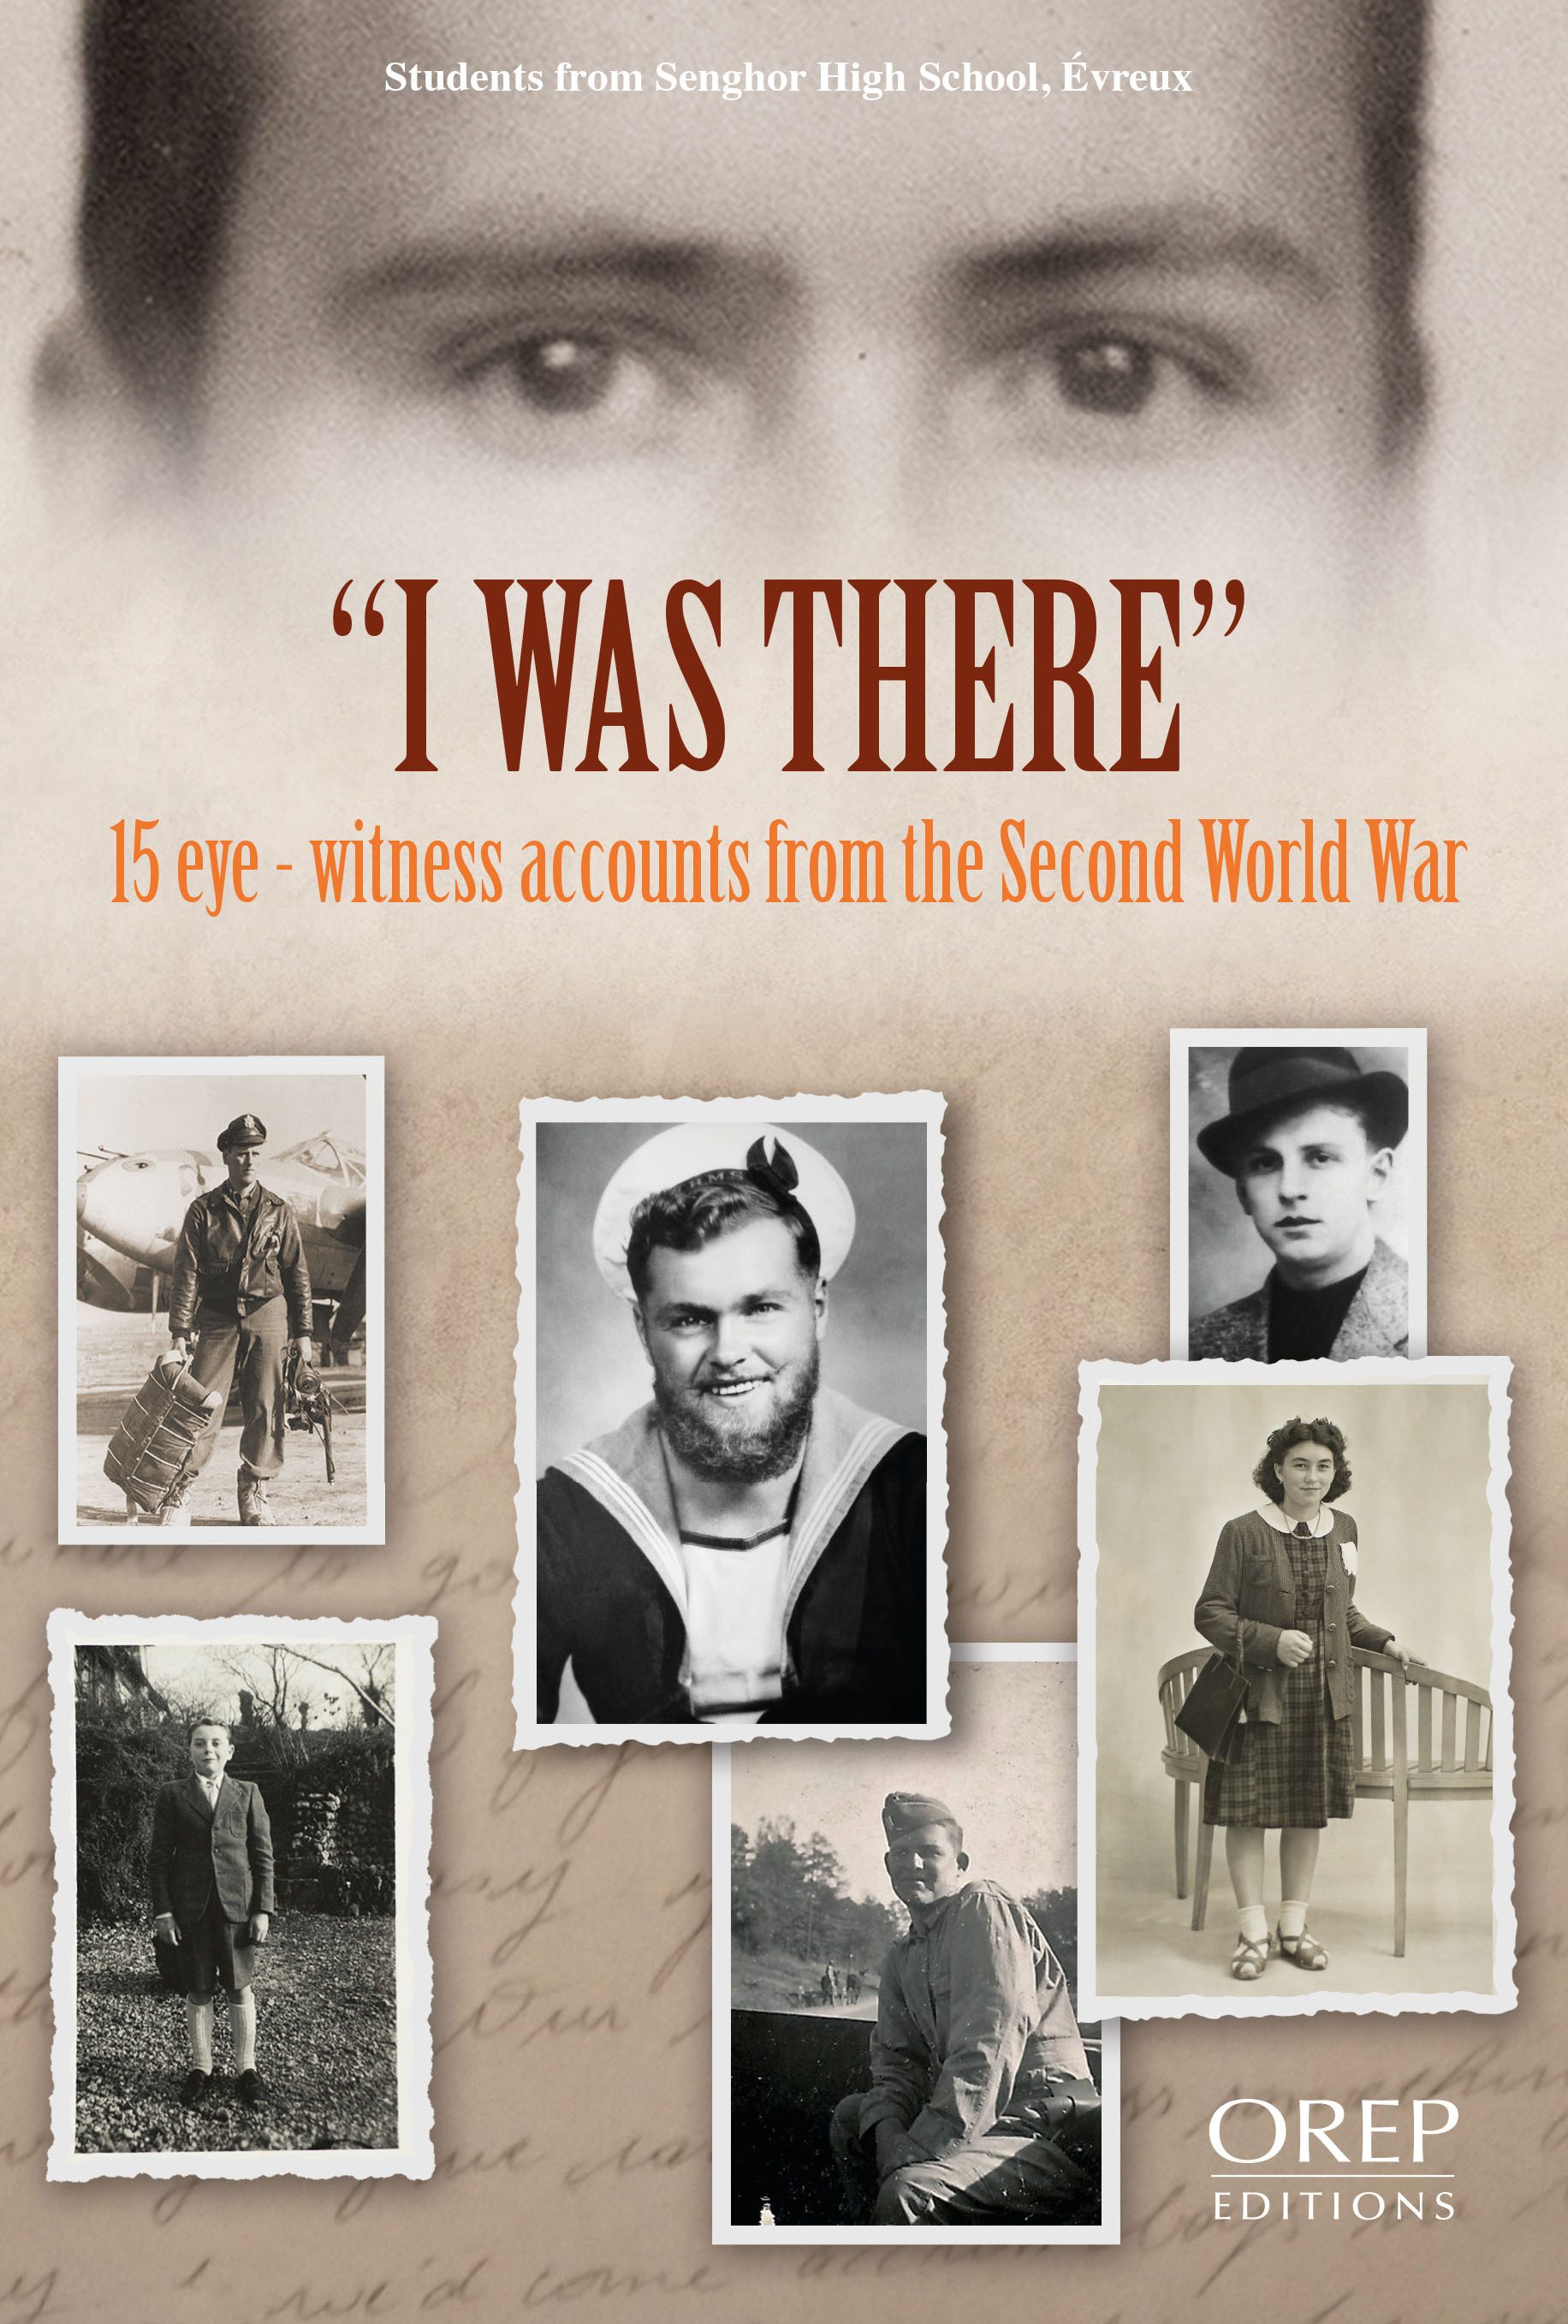 I WAS THERE - 15 EYE-WITNESS ACCOUNTS FROM THE SECOND WORLD WAR